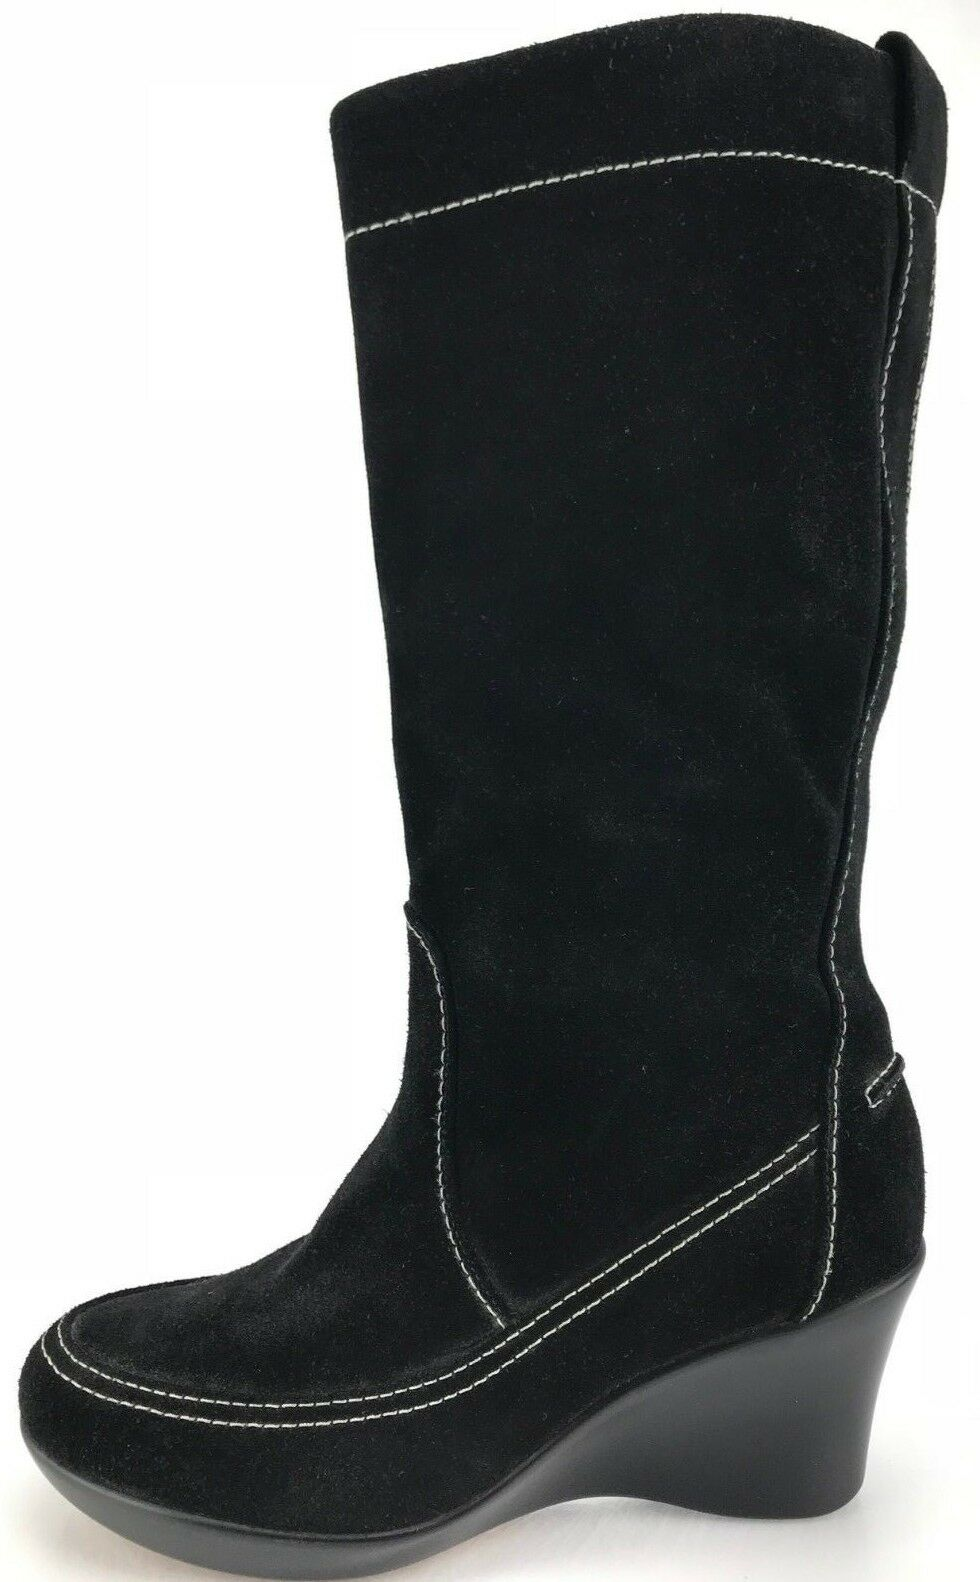 Offriamo vari marchi famosi You by Crocs stivali Pull Up Suede Knee High High High Fashion Wedge scarpe donna 6.5 nero  nuovo di marca